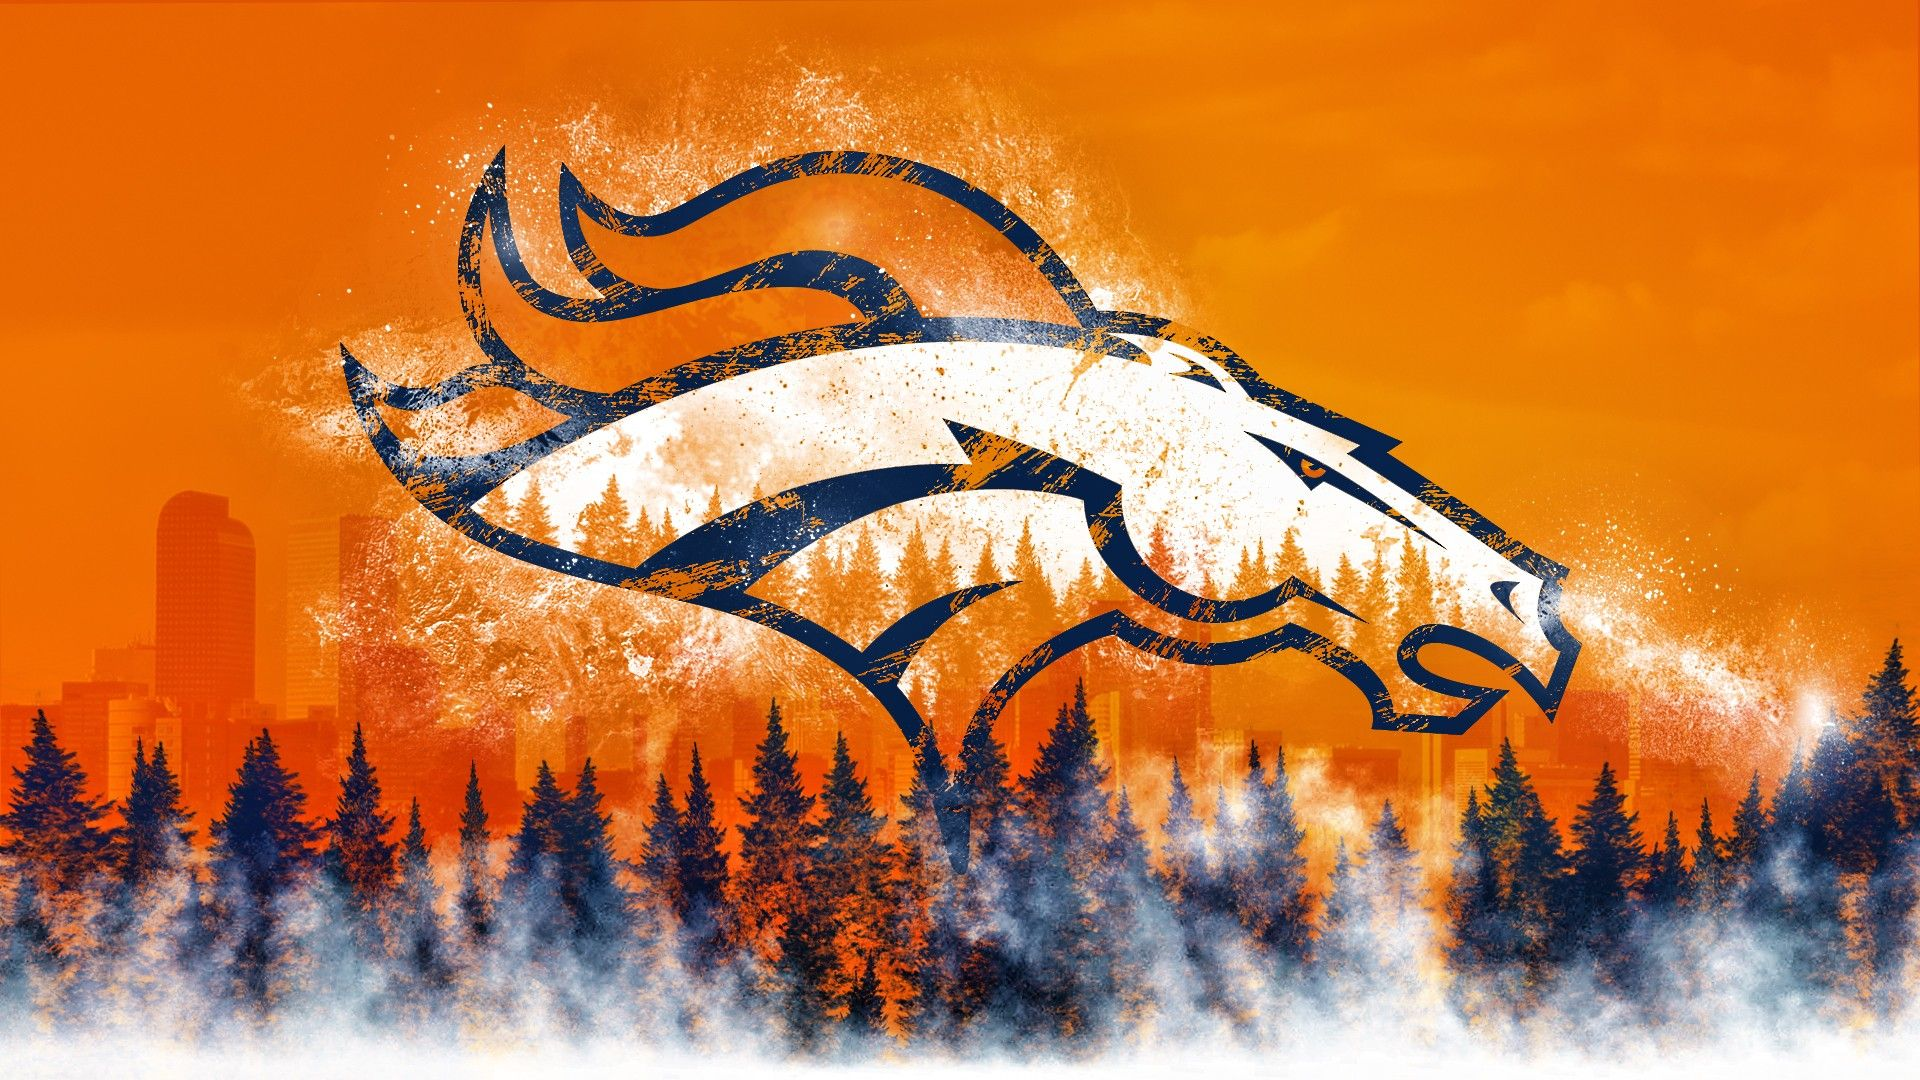 Best Iphone X Wallpaper Live Cool Denver Broncos Wallpaper 2018 Wallpapers Hd